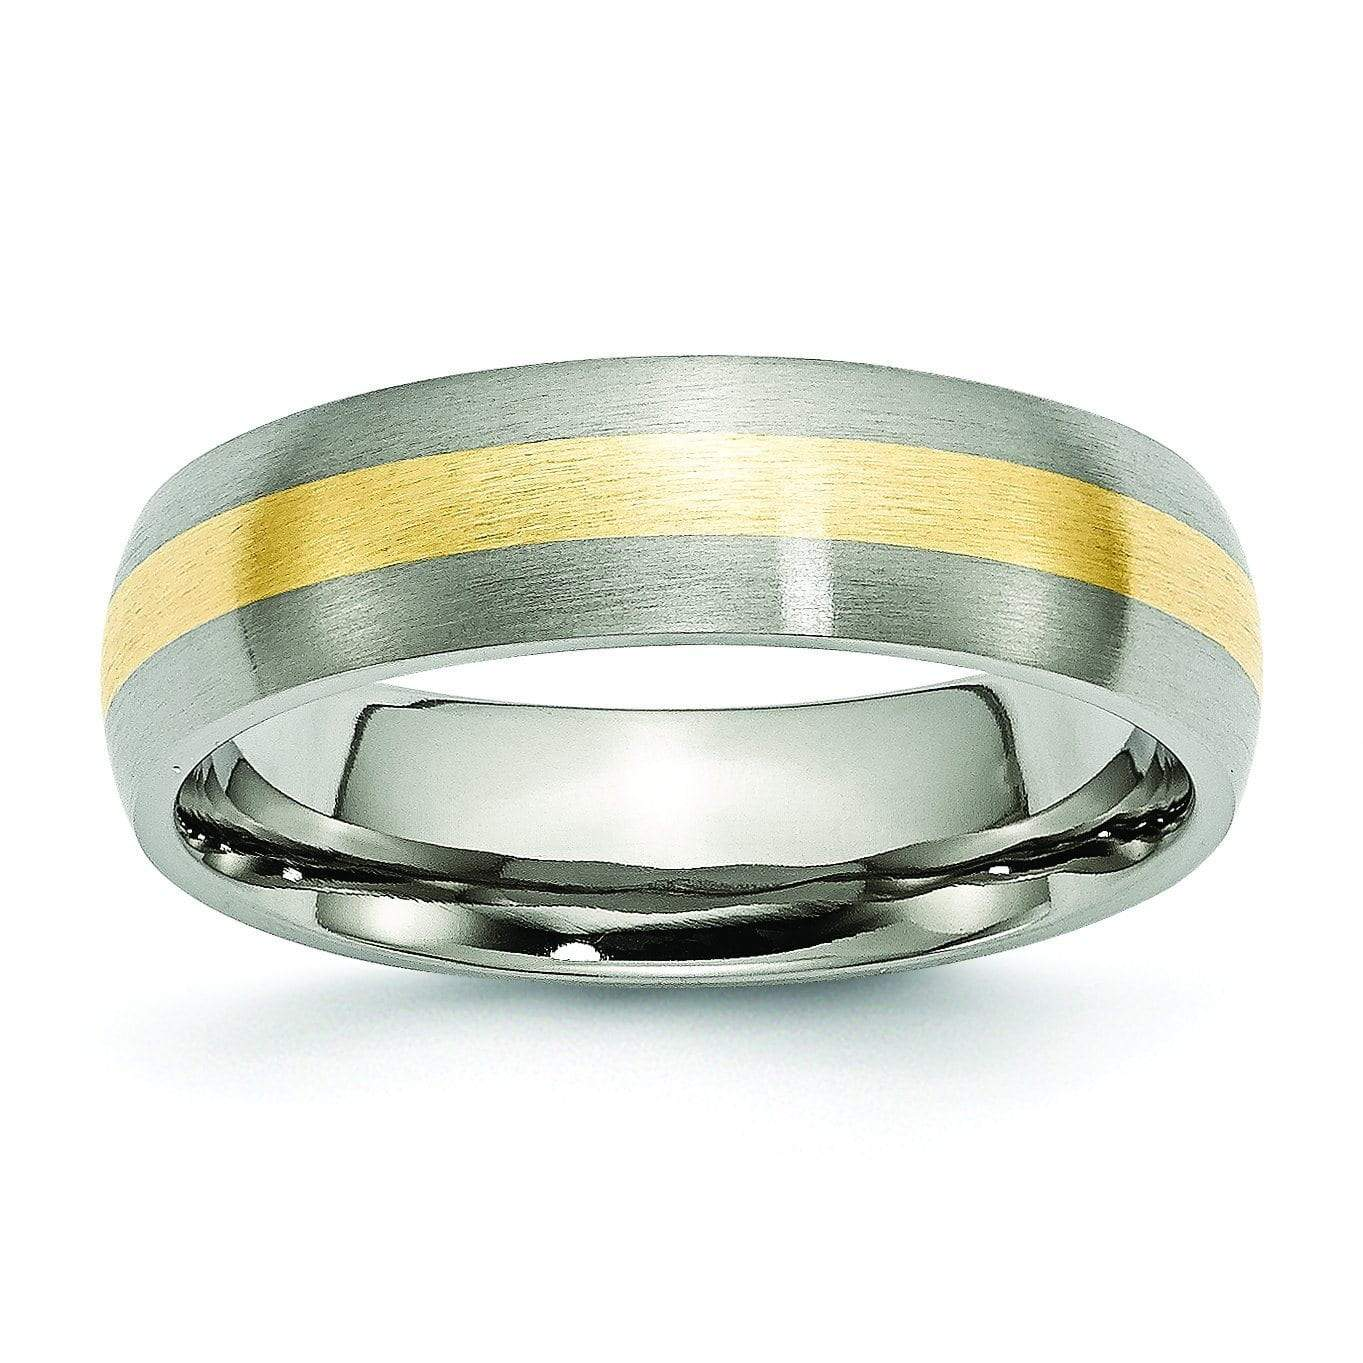 14k Yellow Gold and Titanium Ring Matte Finish in 6mm Titanium Wedding Rings deBebians